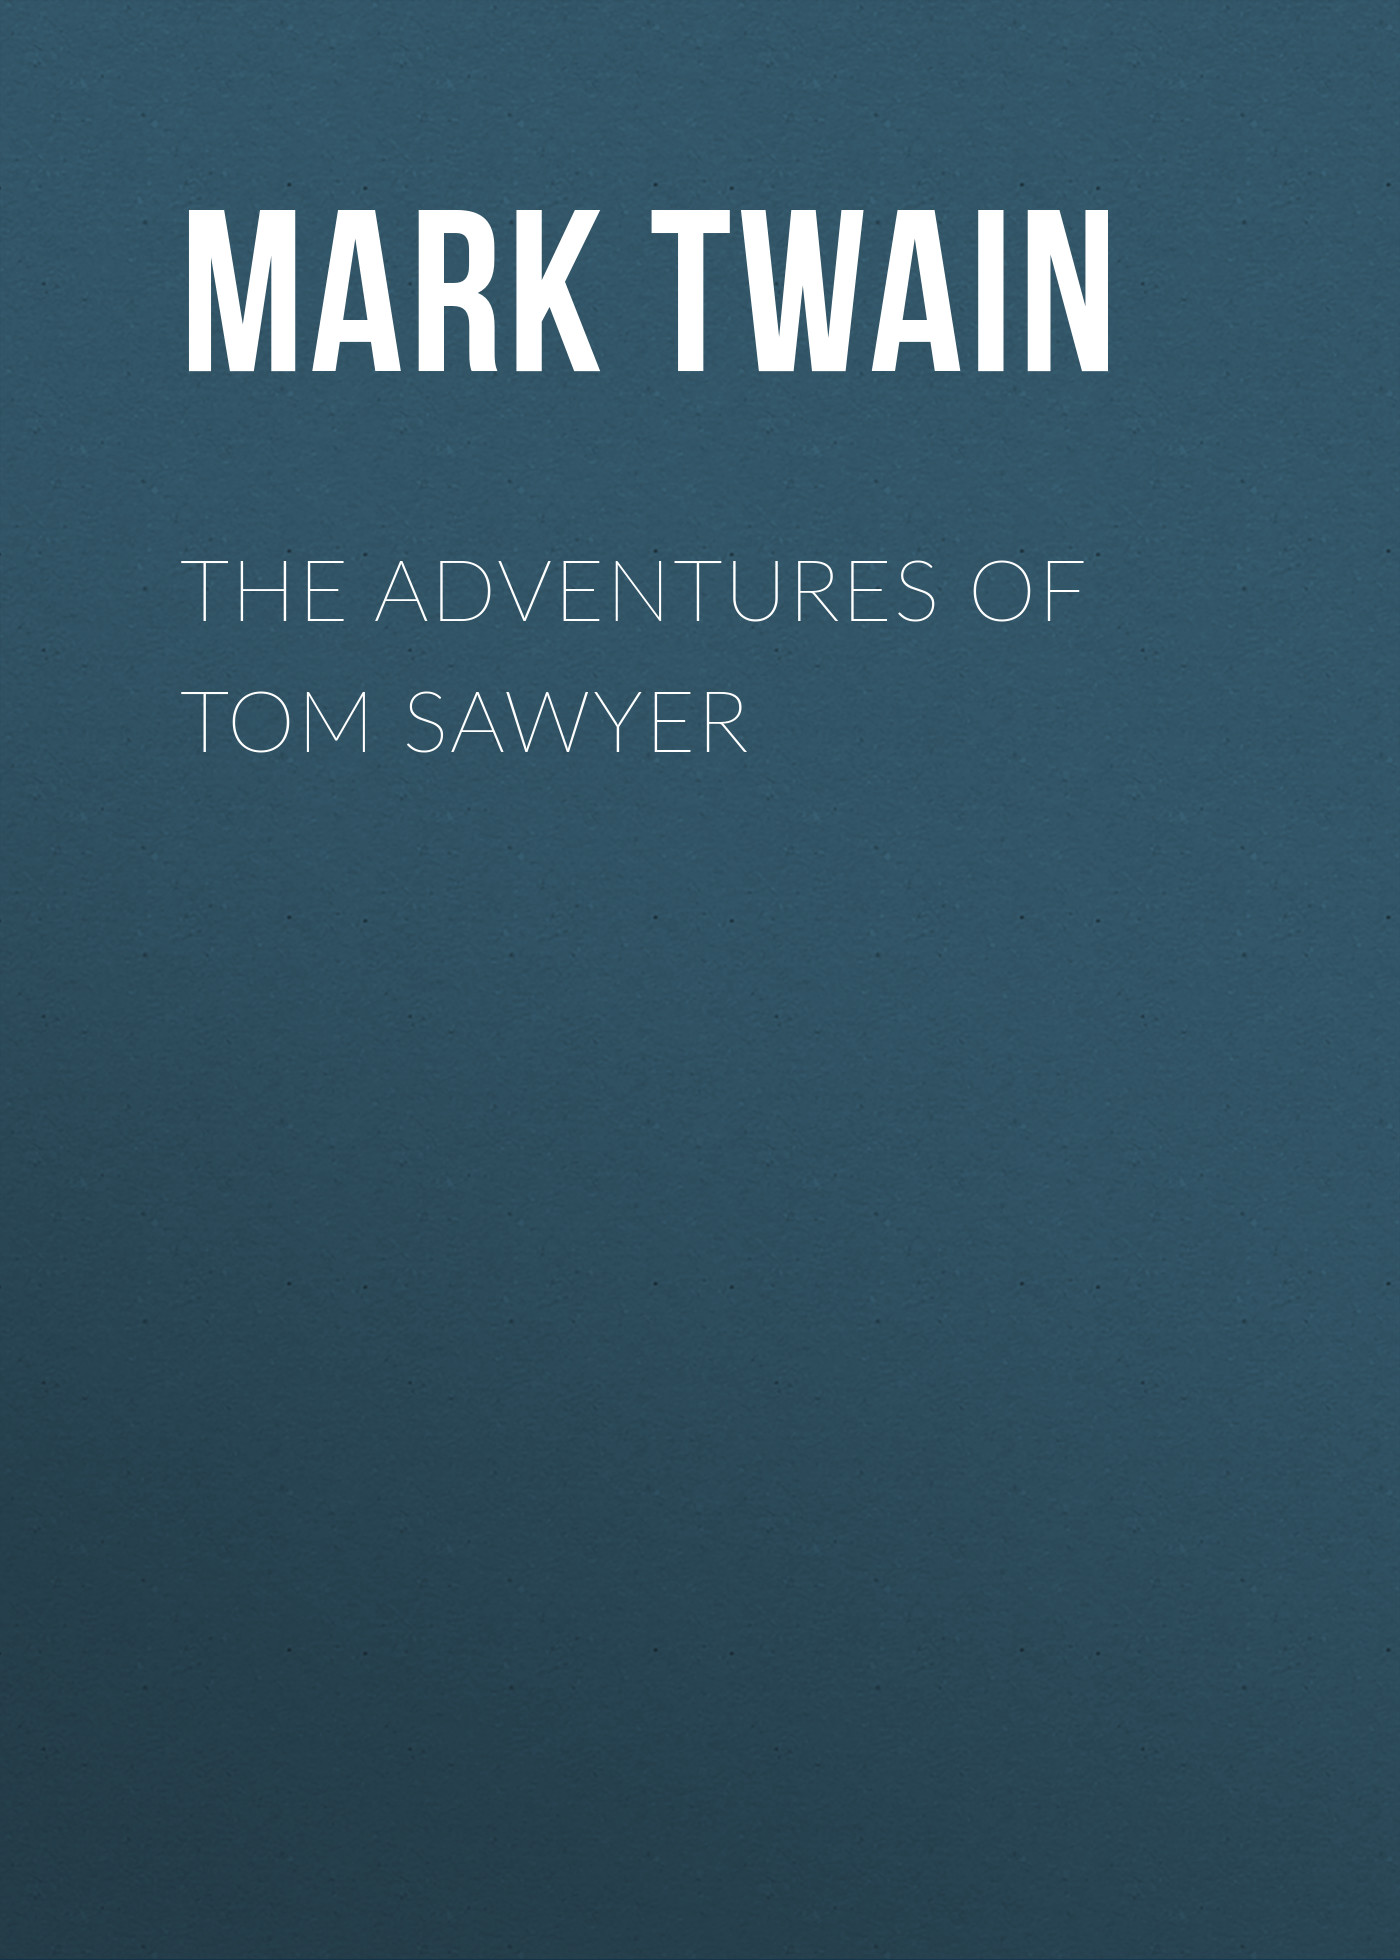 Марк Твен The Adventures of Tom Sawyer hydrogeochemistry in chhoti gandak river basin ganga plain